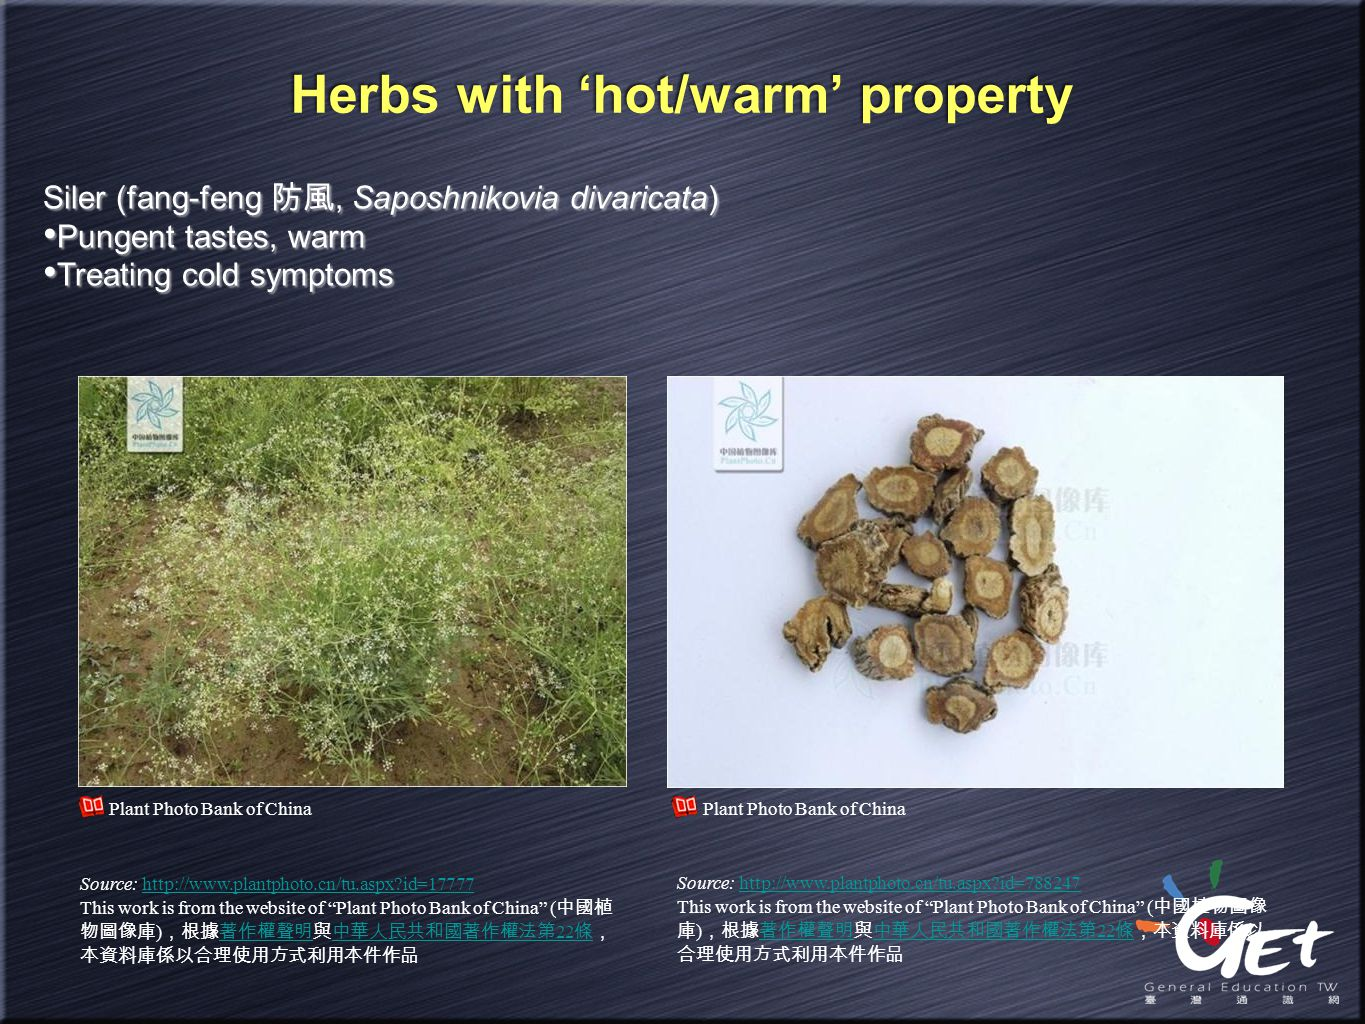 Herbs with 'hot/warm' property